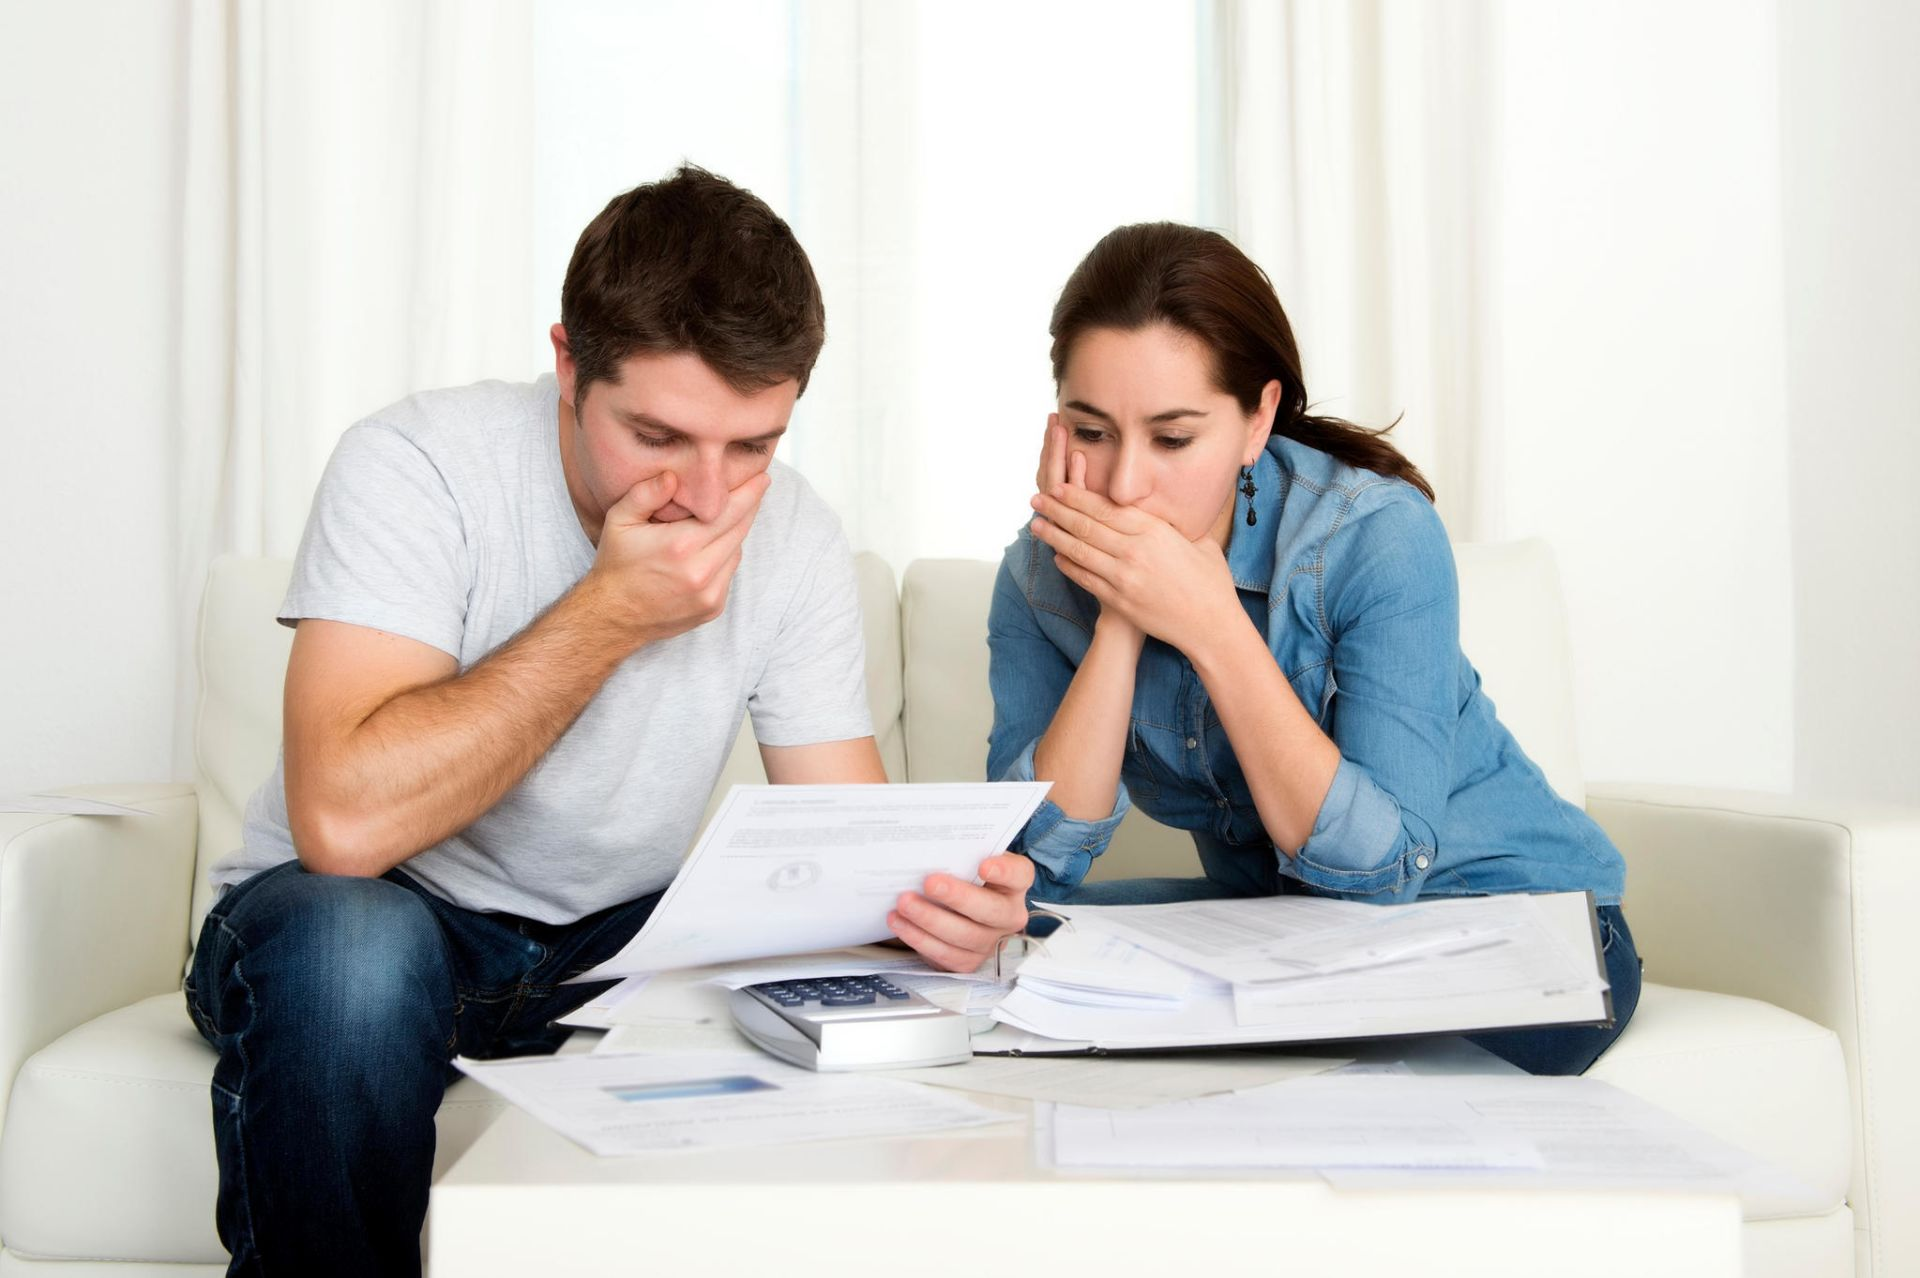 Is It Last Call for Low Mortgage Rate? Why Home Buyers Should Act Now